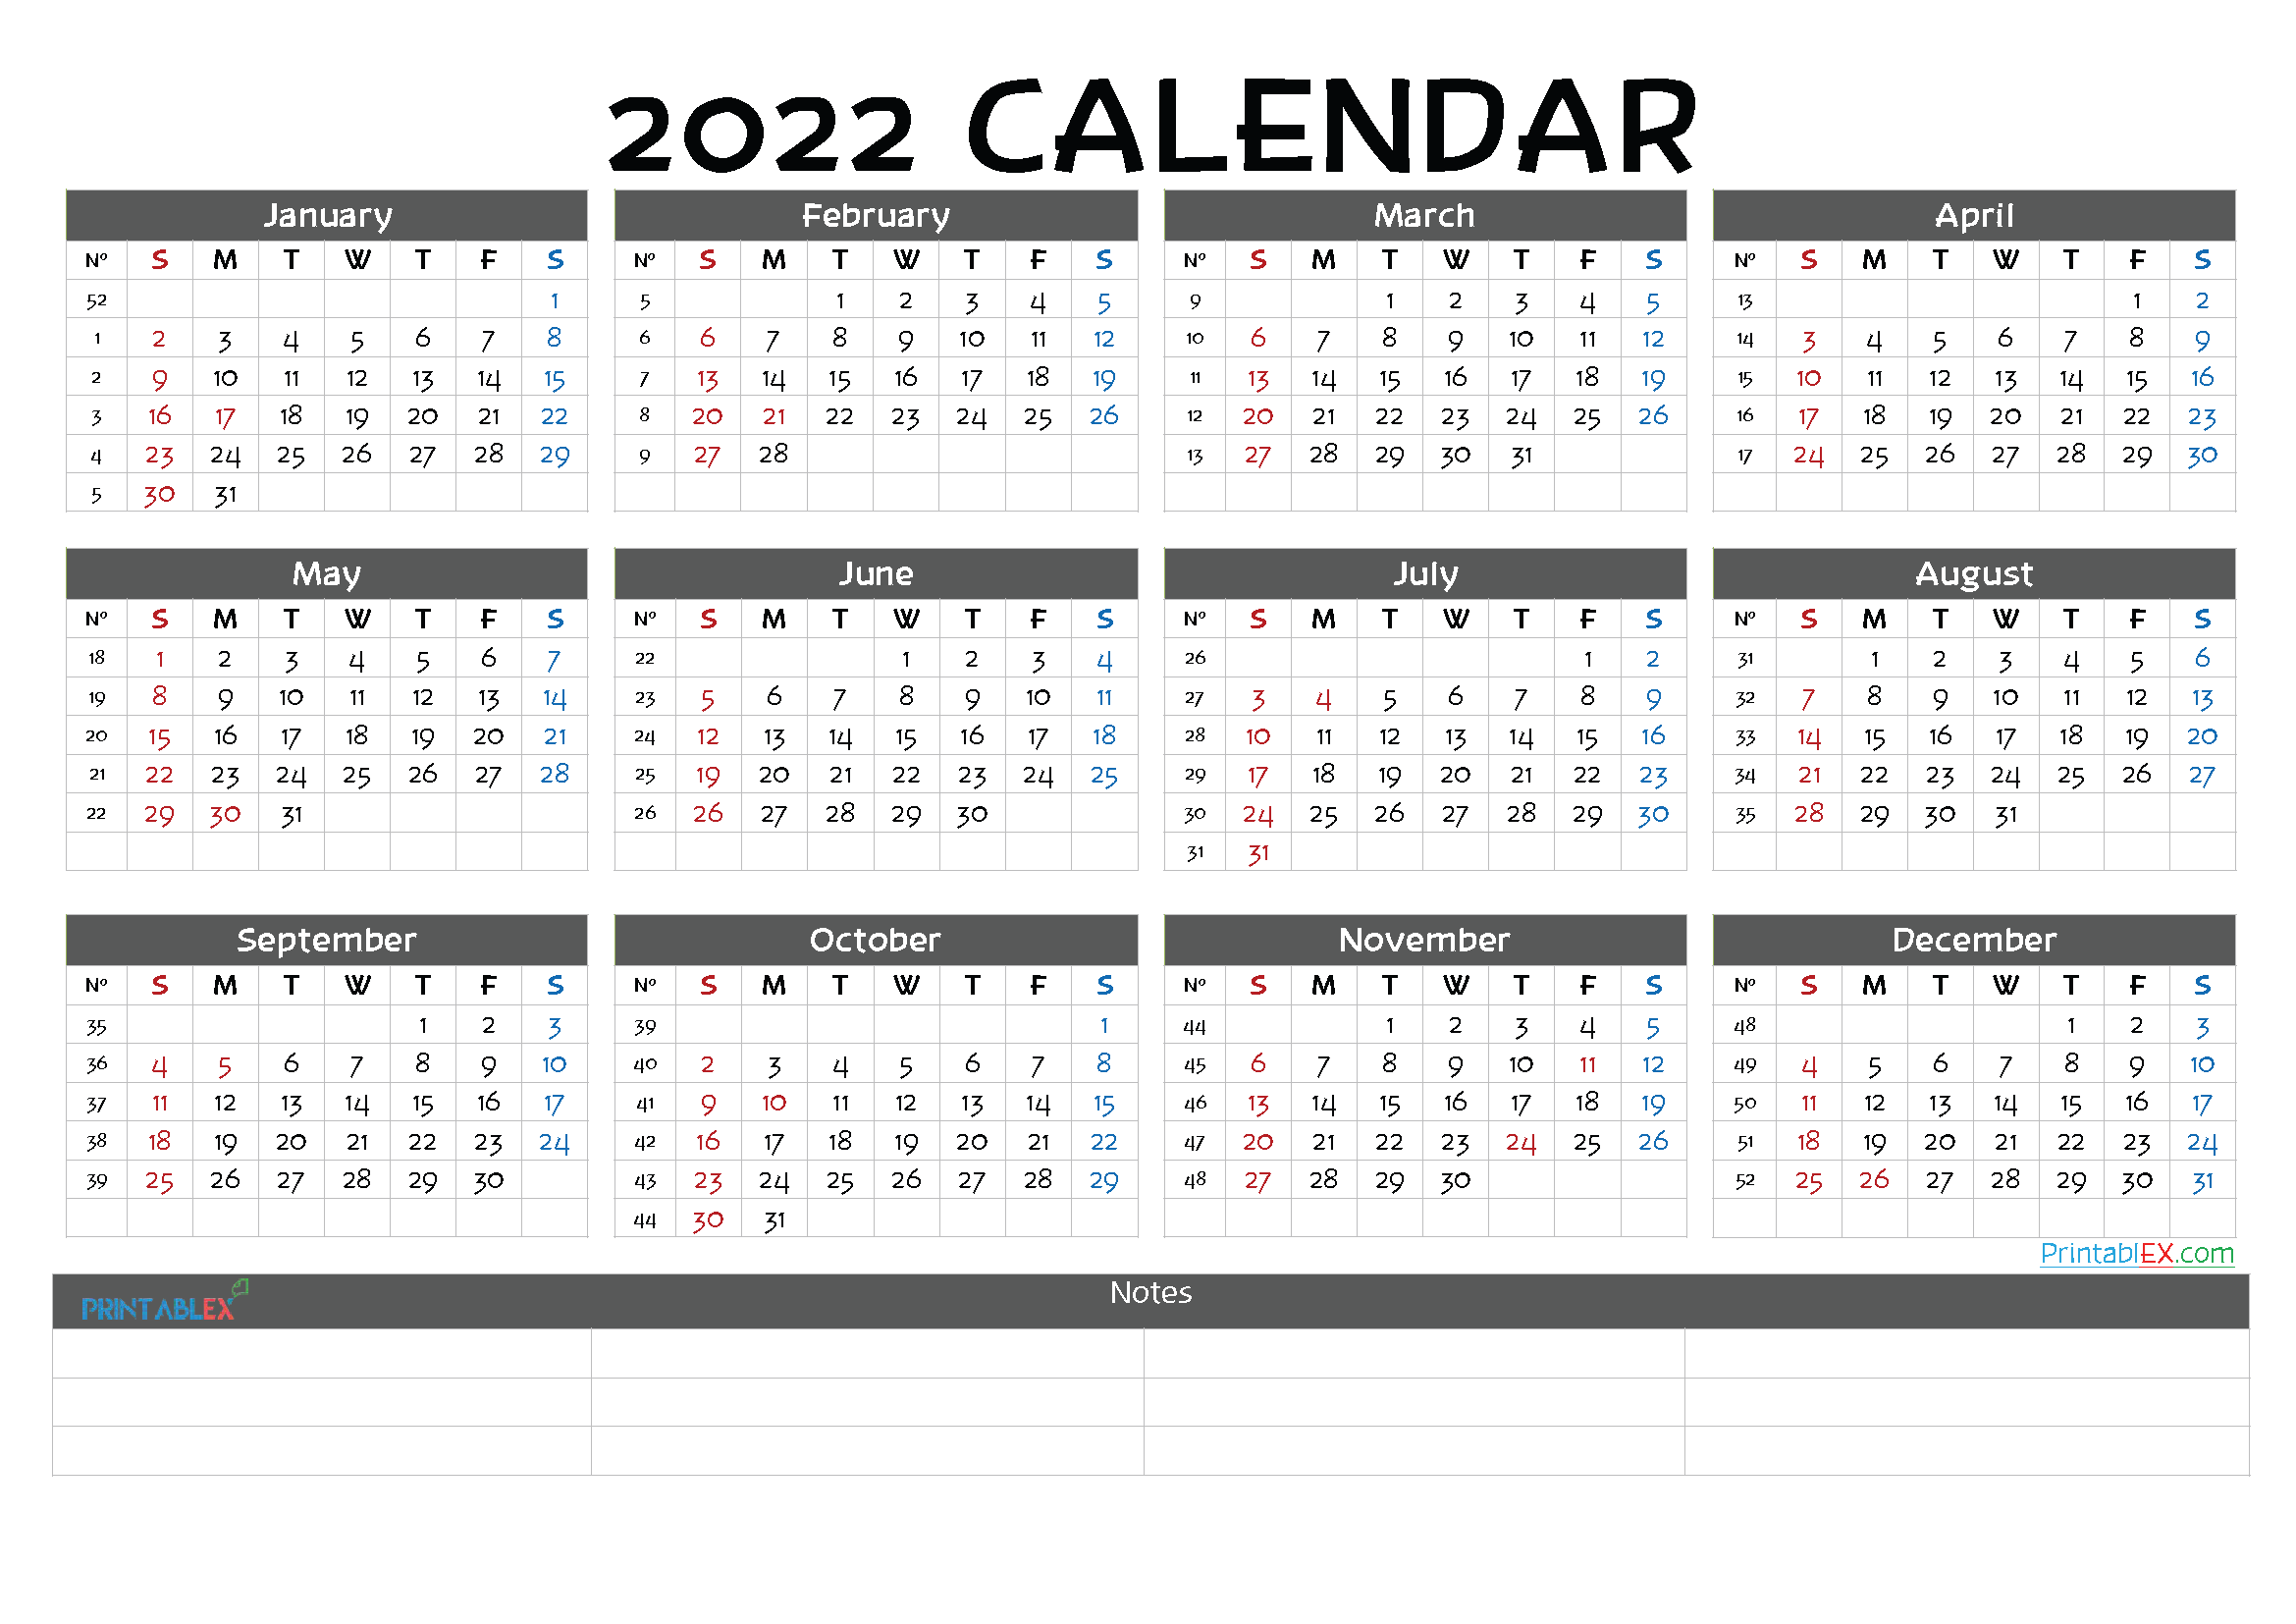 Printable 2022 Yearly Calendar (Font: jelly)